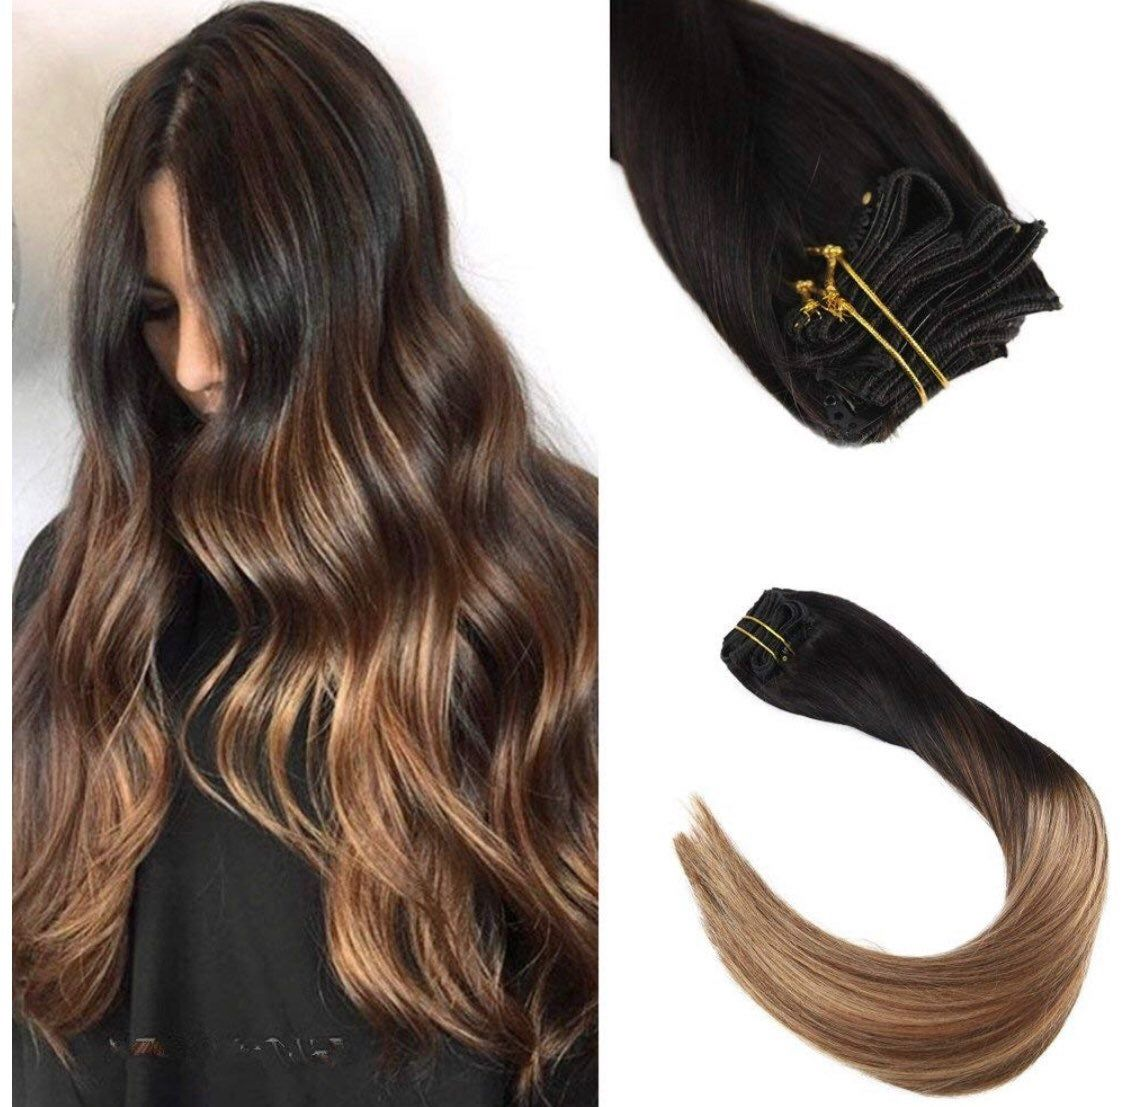 14inch Balayage Remy Human Hair Clip in Extensions Ombre